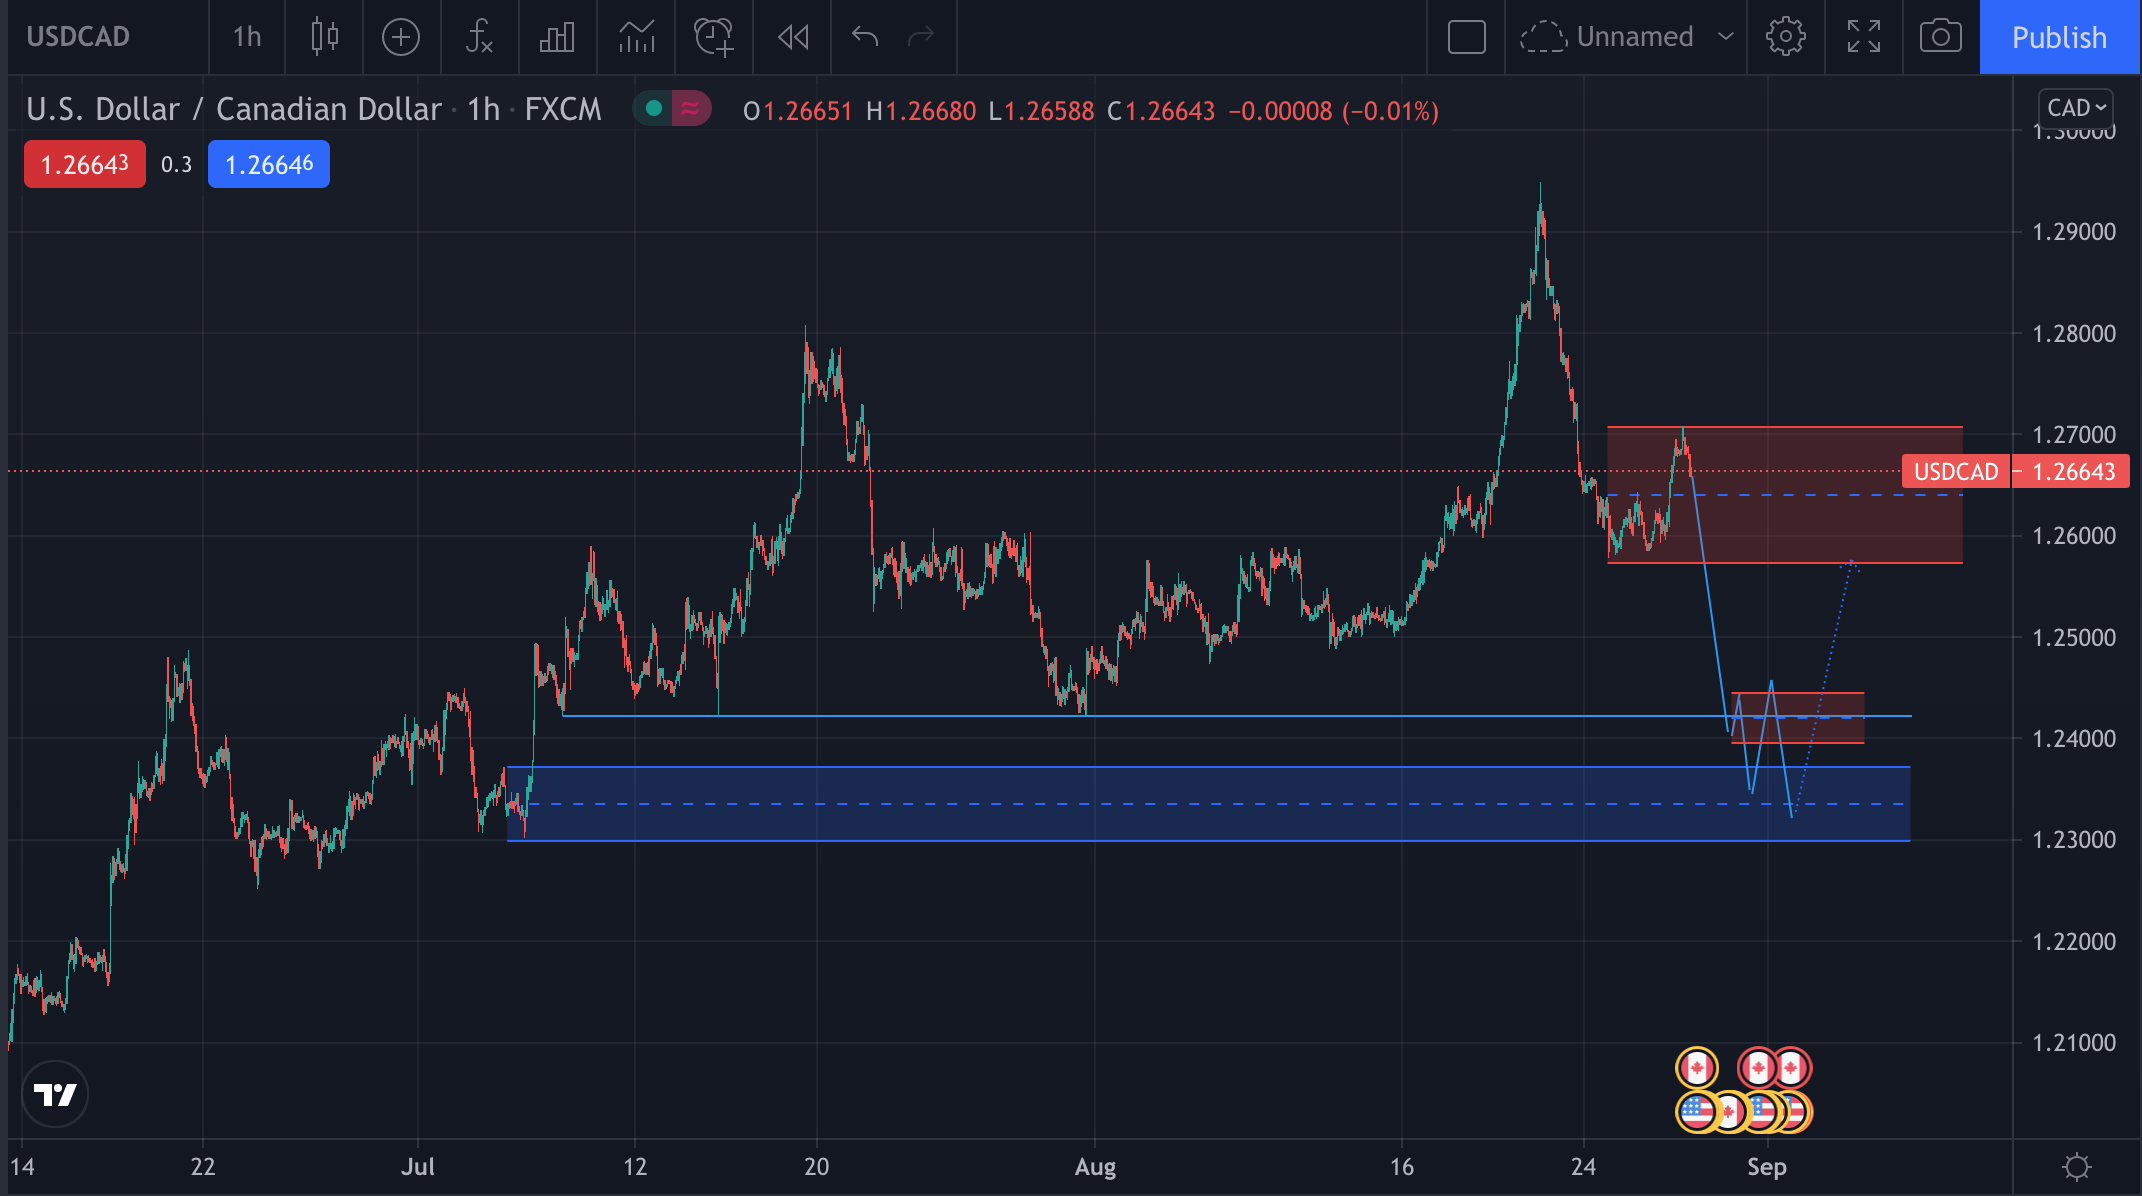 USD/CAD H1 Price action, Supply and demand